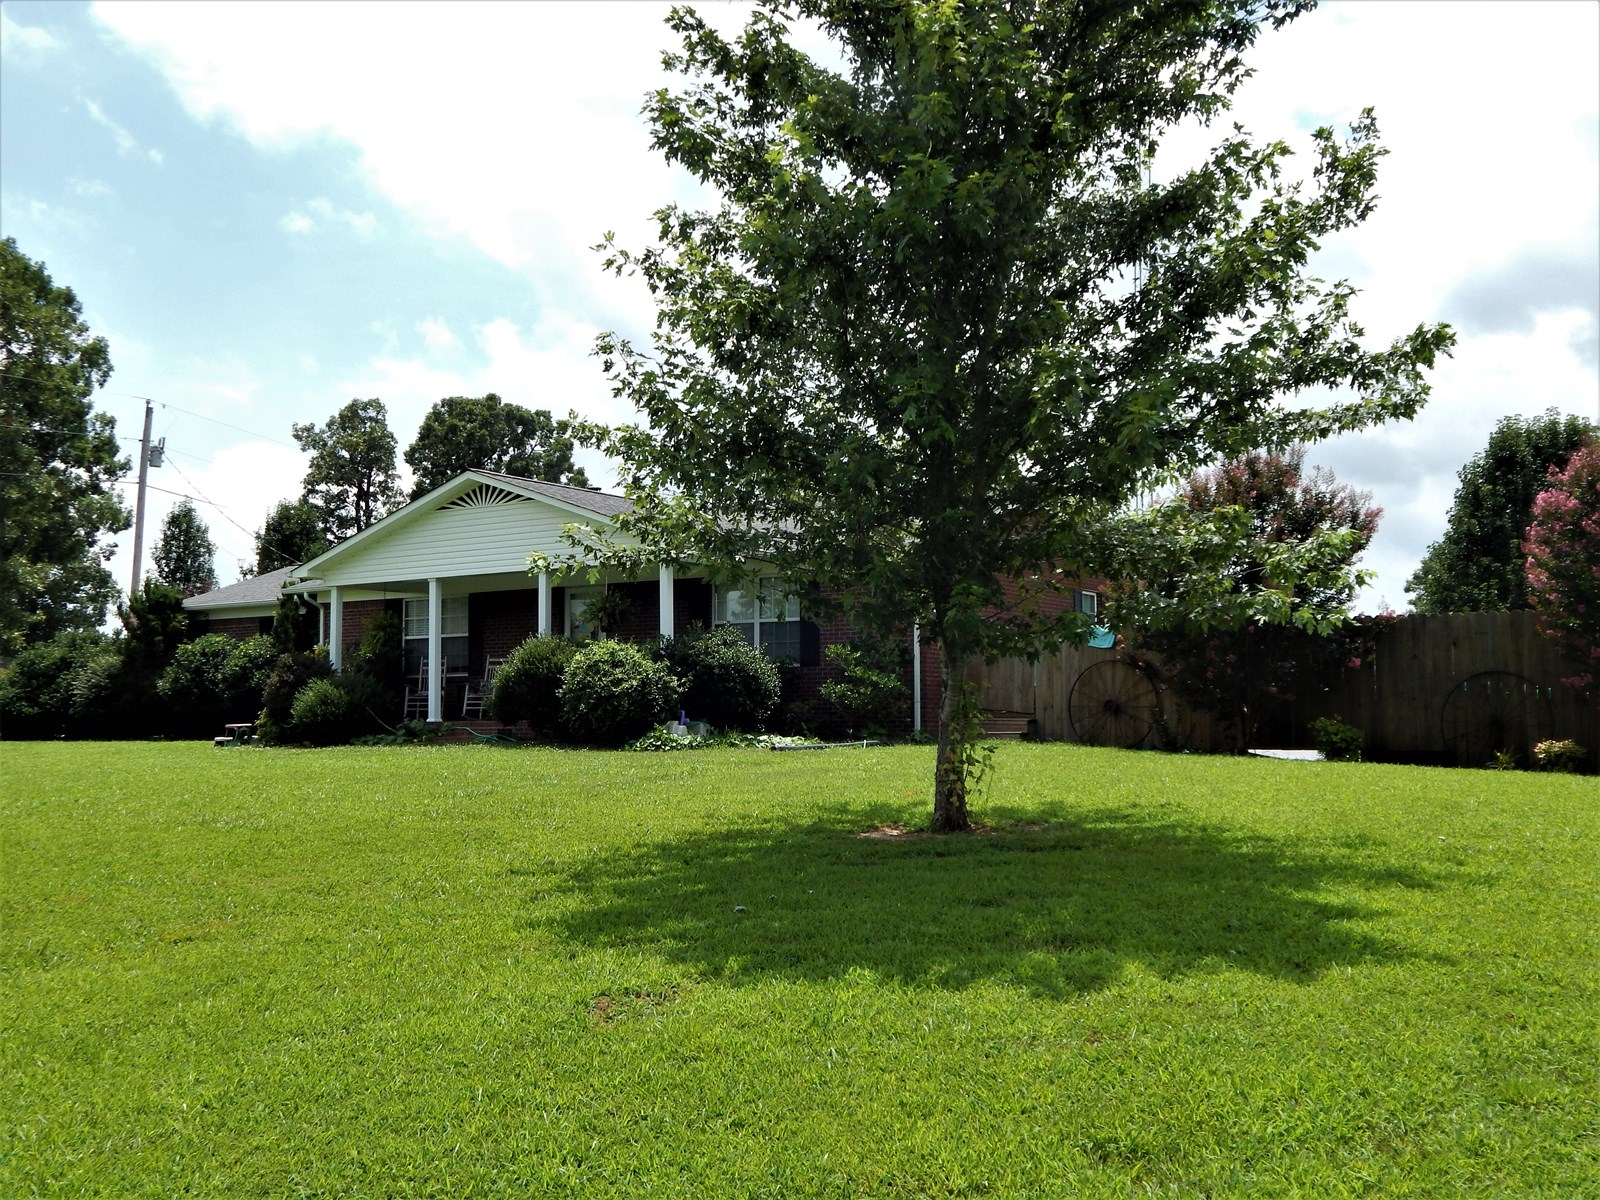 For Sale Tennessee Country Home - Farm, 55.6 Acres, 2 Ponds!